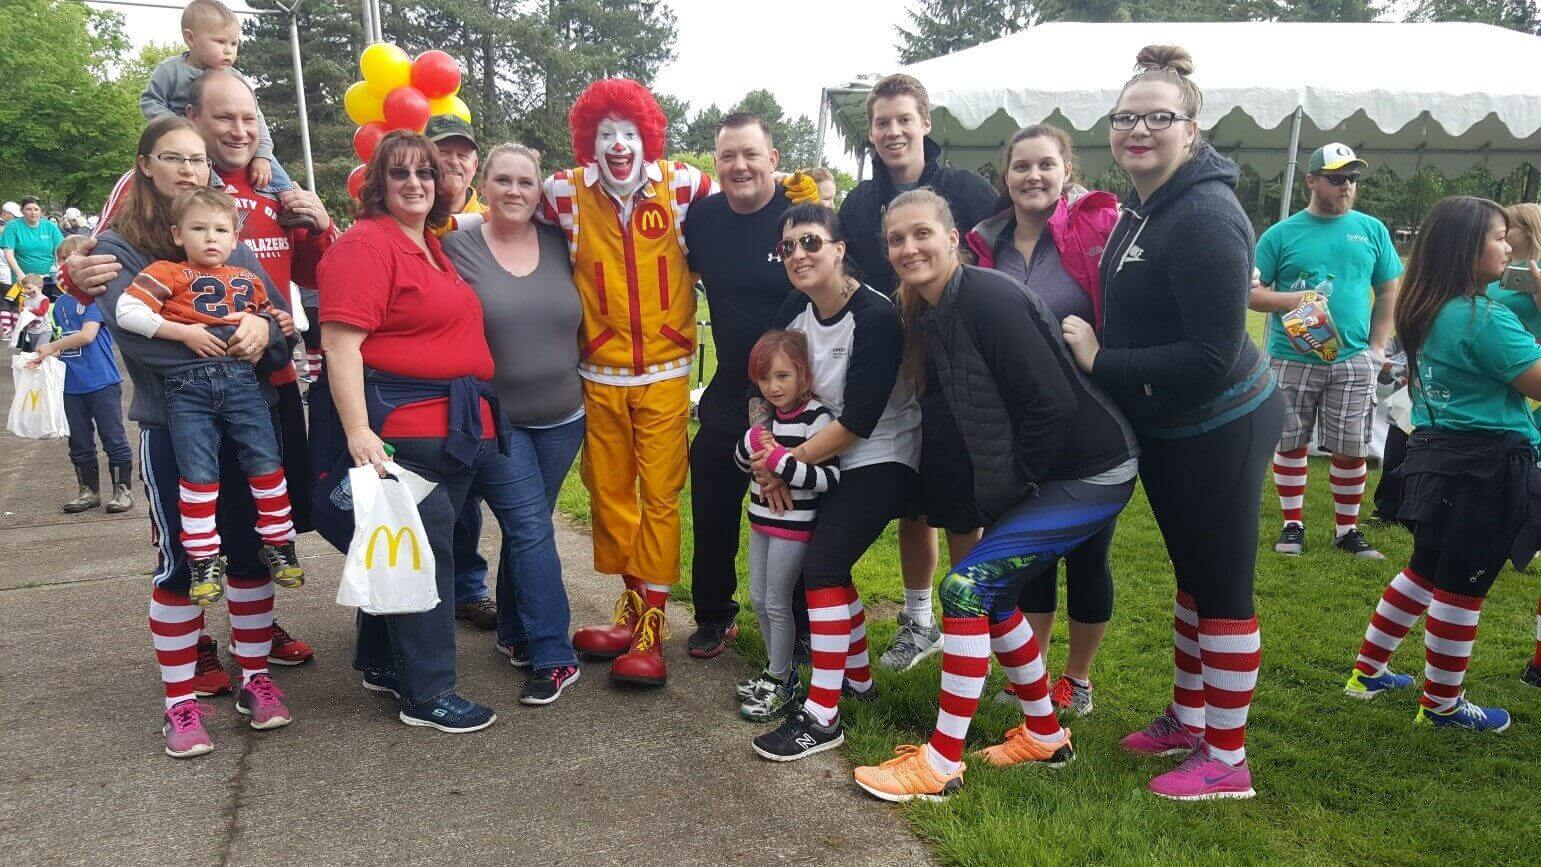 RMHC group photo with Ronald McDonald